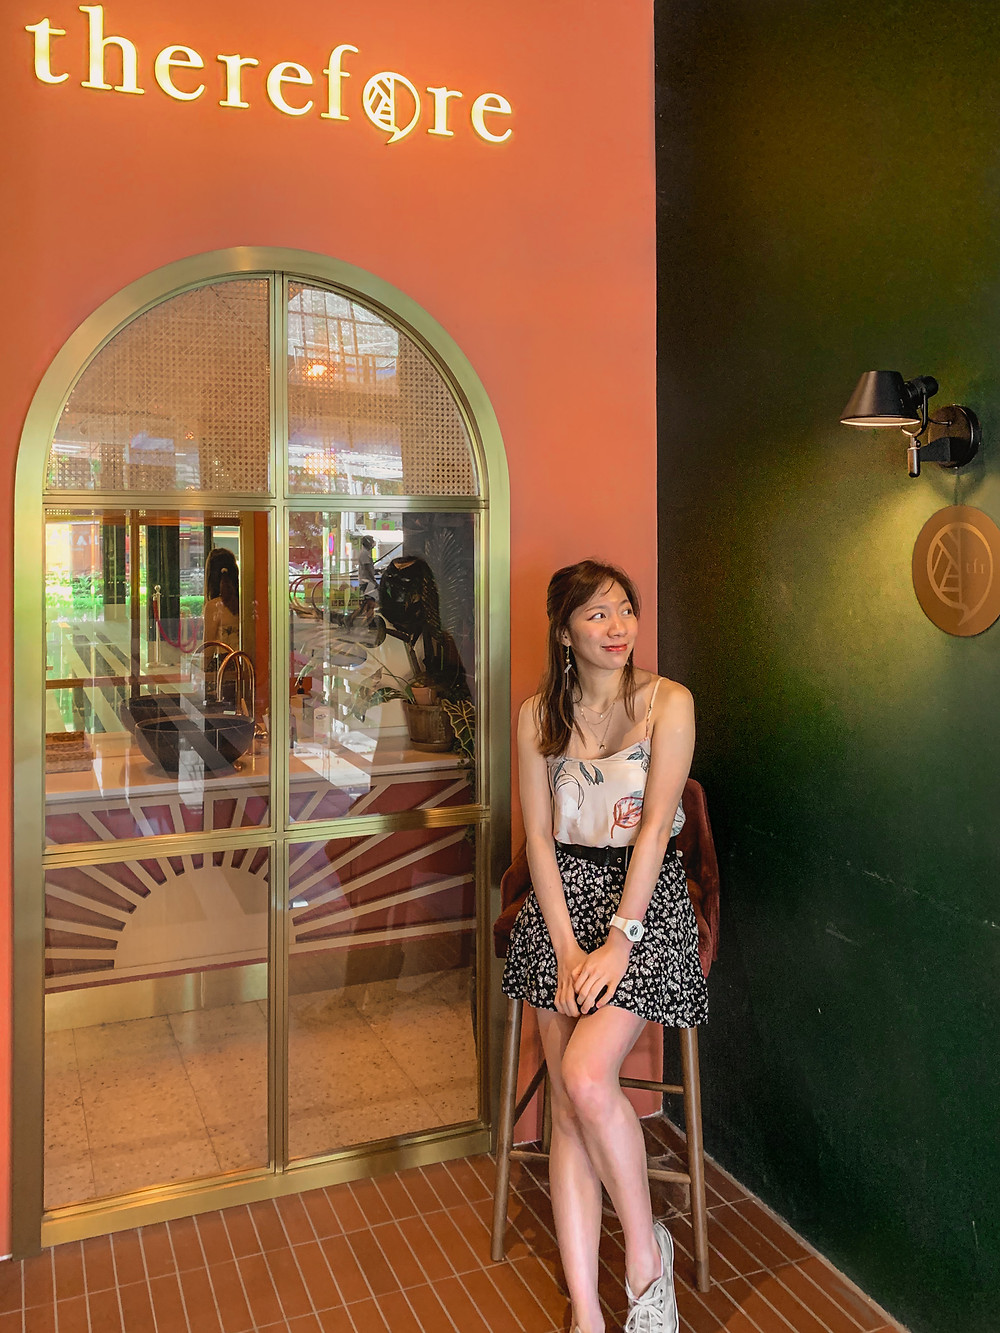 Style blogger in floral camisole and skirt outfit against entrance of Therefore Cafe, Malaysia, RollingBear Travels blog.